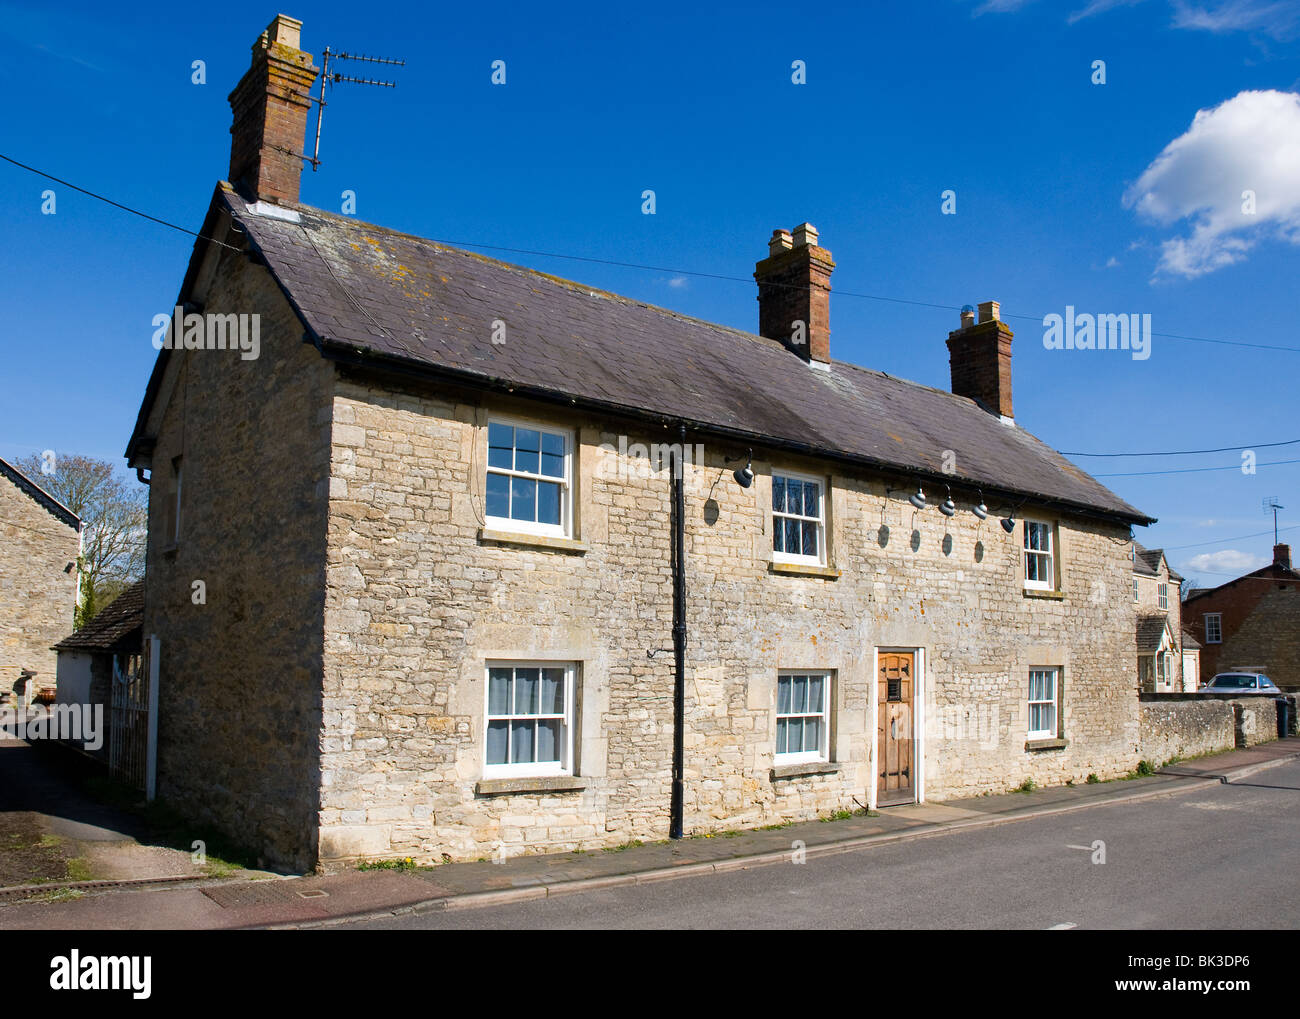 A closed down village pub in the cotswolds.  Pub lights still visible on the wall - Stock Image